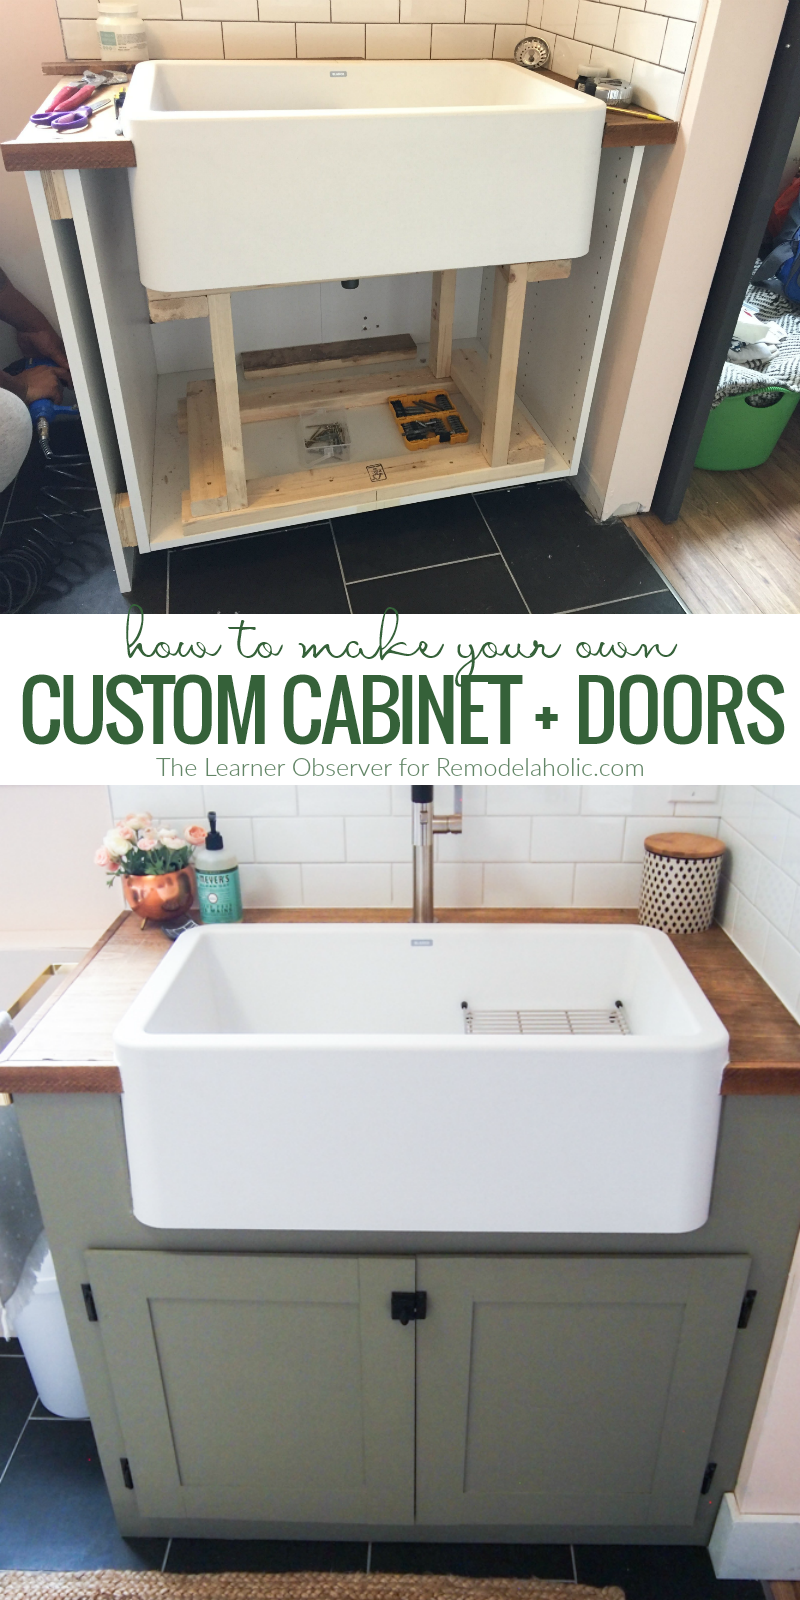 Cute How To Make Your Own Custom Cabinet Doors For An Odd Sized Cabinet Space Remodelaholic